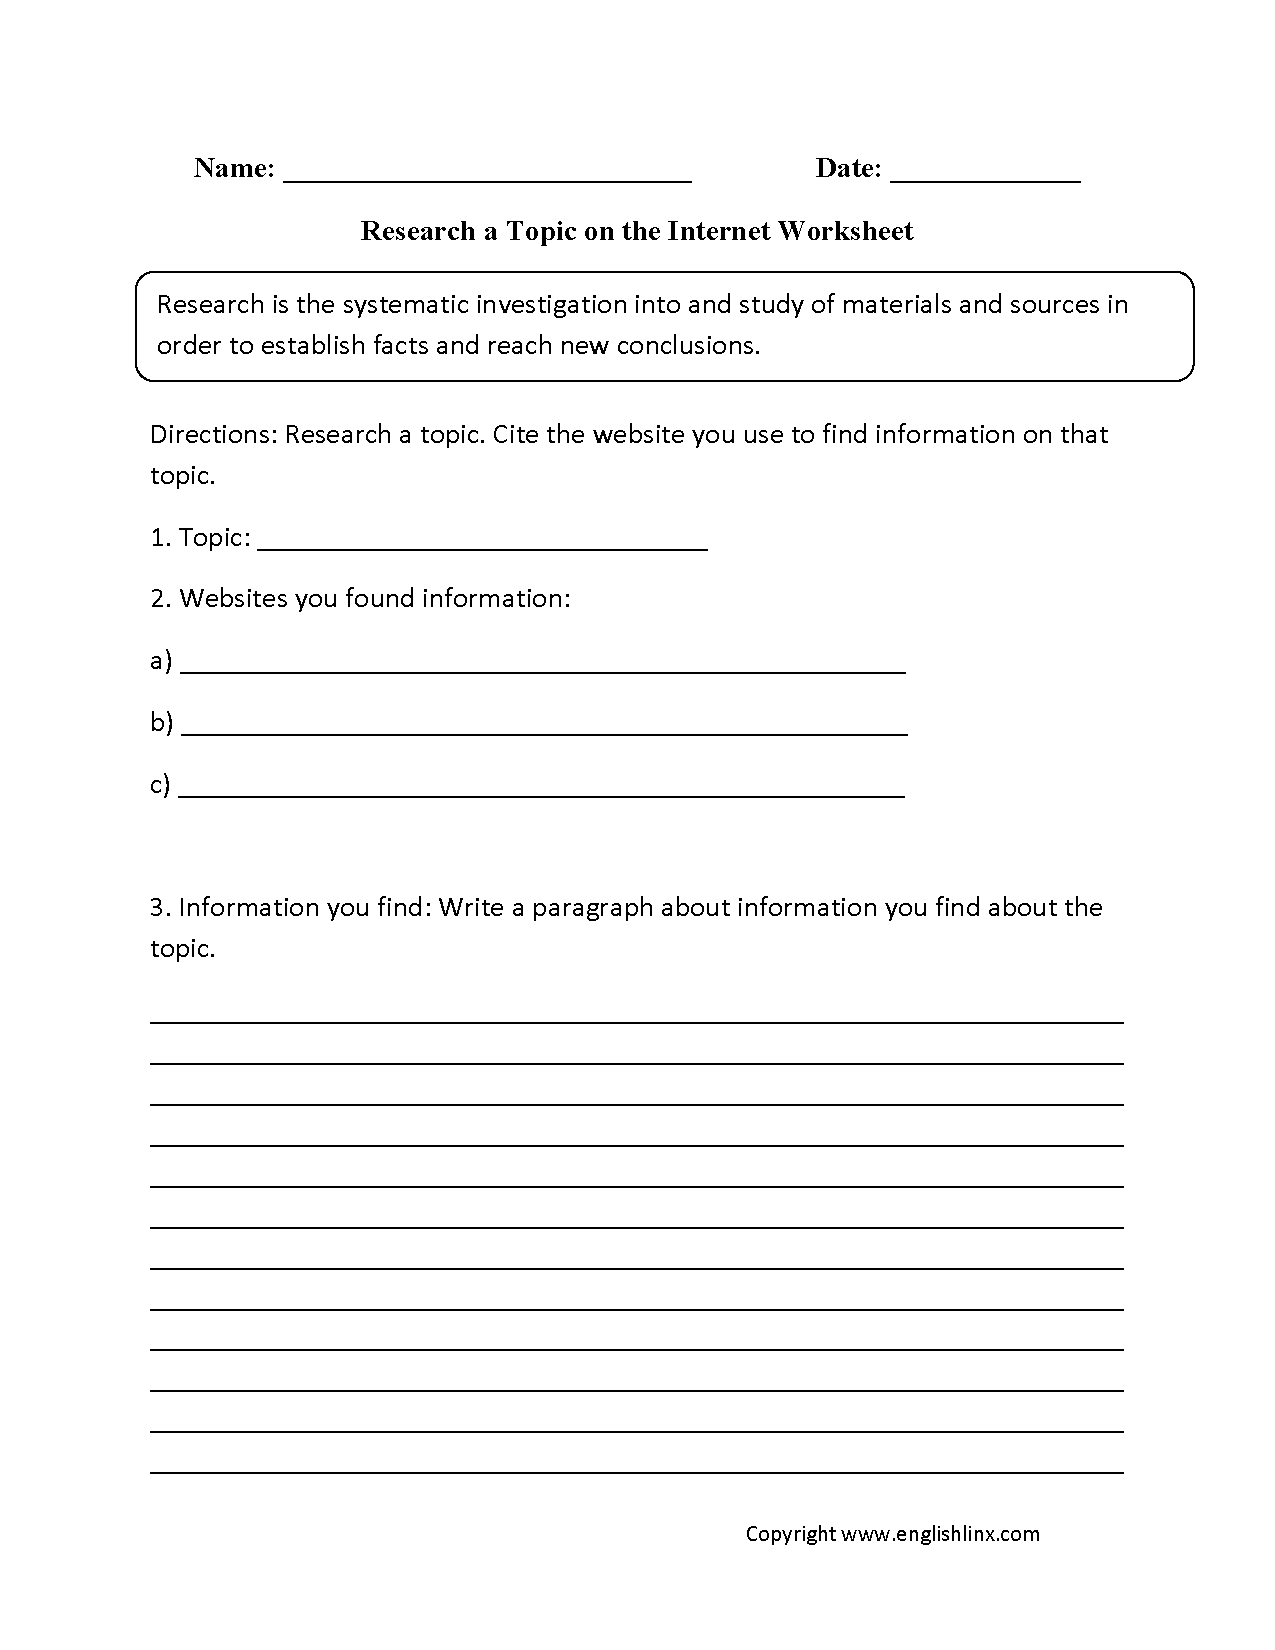 Aldiablosus  Unusual Englishlinxcom  Research Worksheets With Exquisite On The Internet Worksheet With Comely Stephen Covey Weekly Worksheet Also Digestive System Worksheets Middle School In Addition Ordering  Digit Numbers Worksheet And Grade  Patterning Worksheets As Well As Estimating On A Number Line Worksheet Additionally Estimating Length Worksheet From Englishlinxcom With Aldiablosus  Exquisite Englishlinxcom  Research Worksheets With Comely On The Internet Worksheet And Unusual Stephen Covey Weekly Worksheet Also Digestive System Worksheets Middle School In Addition Ordering  Digit Numbers Worksheet From Englishlinxcom